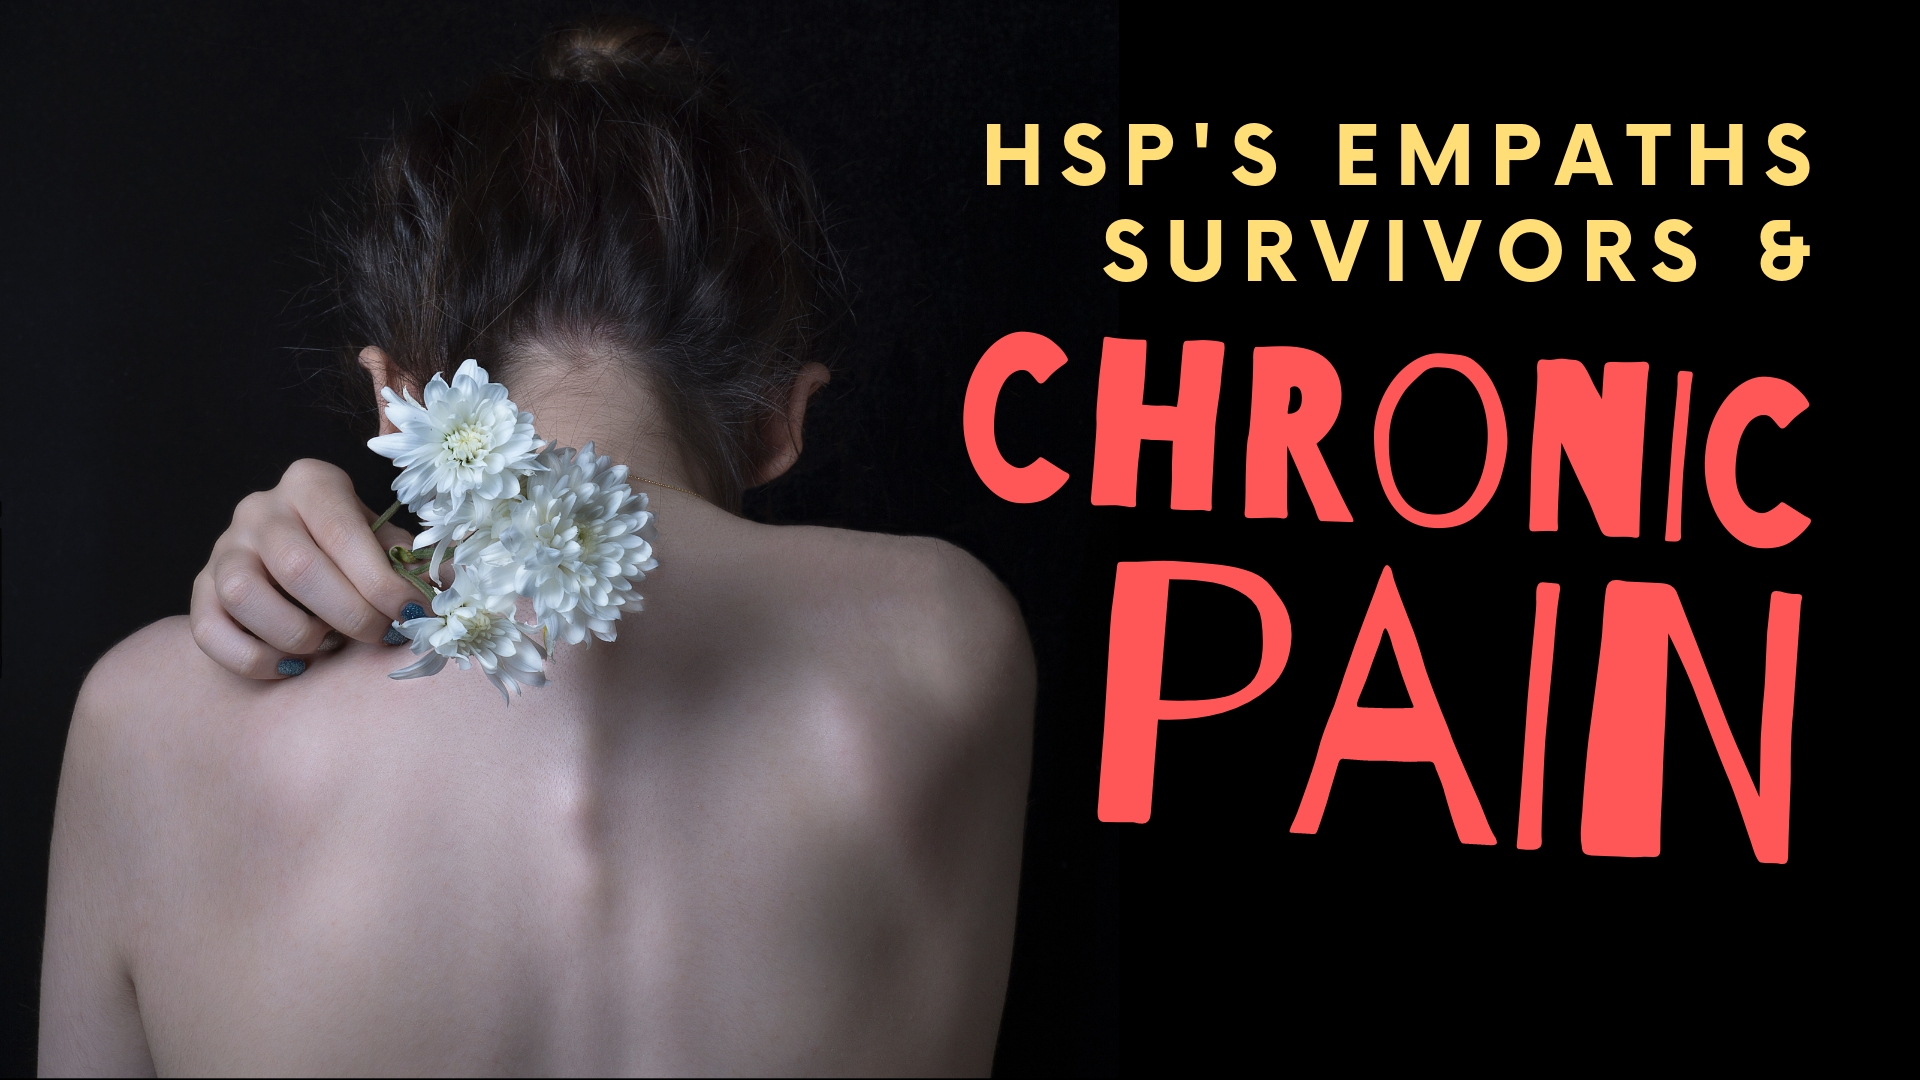 HSPs Empaths survivors and Chronic Pain Issues.jpg